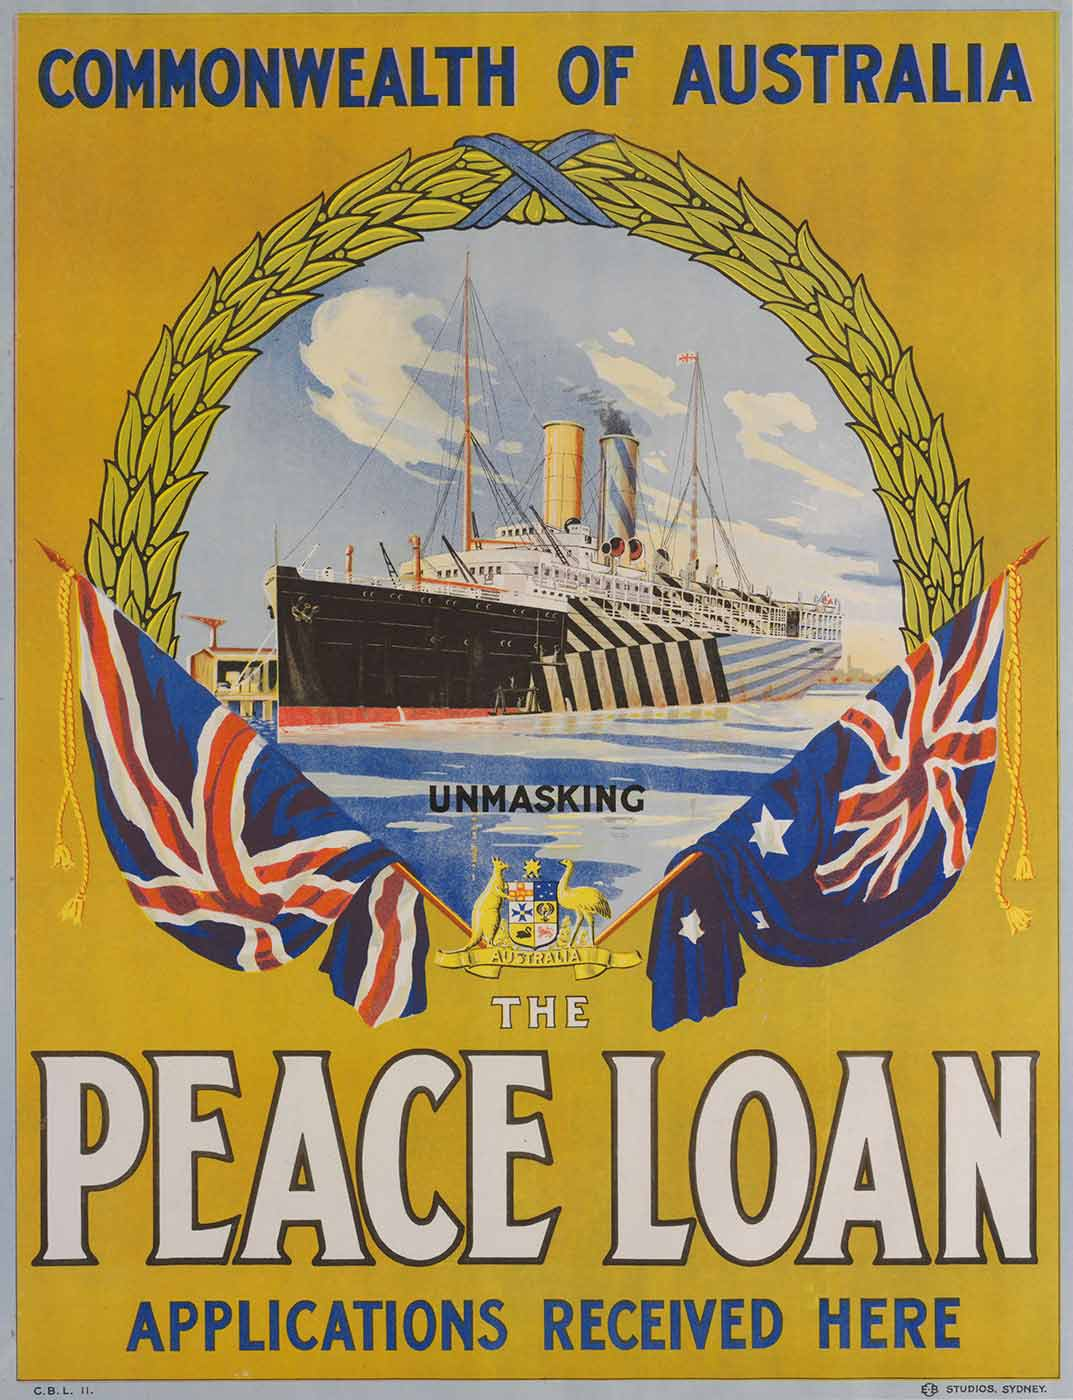 A coloured picture featuring a large ship in a circular-wreathed frame. An image of the Australian coat of arms with an Australian flag and Union Jack on either side is at the base of the frame. The text reads 'COMMONWEALTH OF AUSTRALIA. UNMASKING THE PEACE LOAN. APPLICATIONS RECEIVED HERE'. - click to view larger image